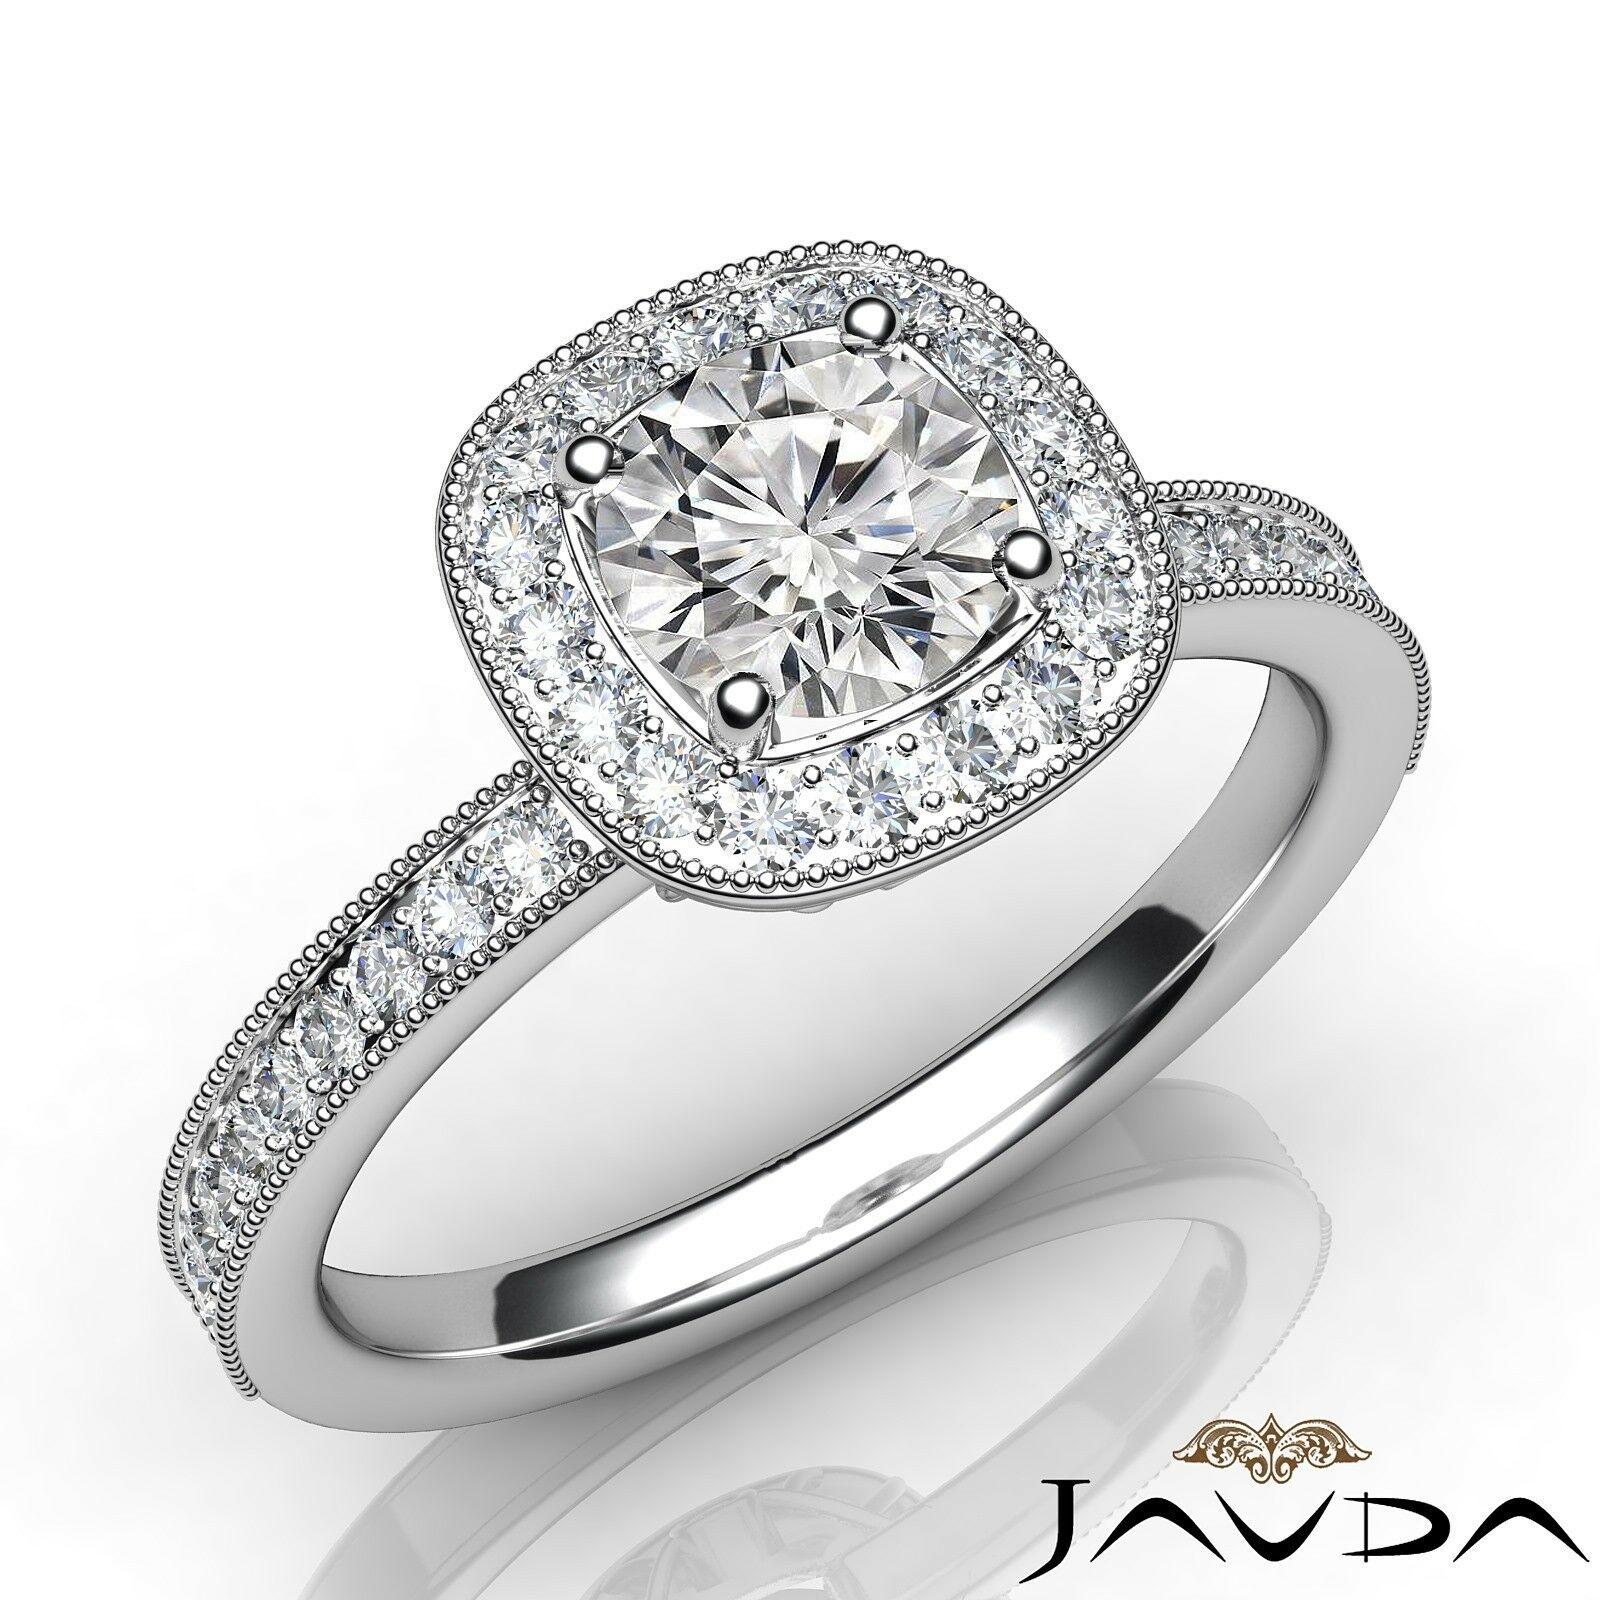 1.2ctw Classic 4 Prong Round Diamond Engagement Ring GIA H-VS1 White Gold Rings